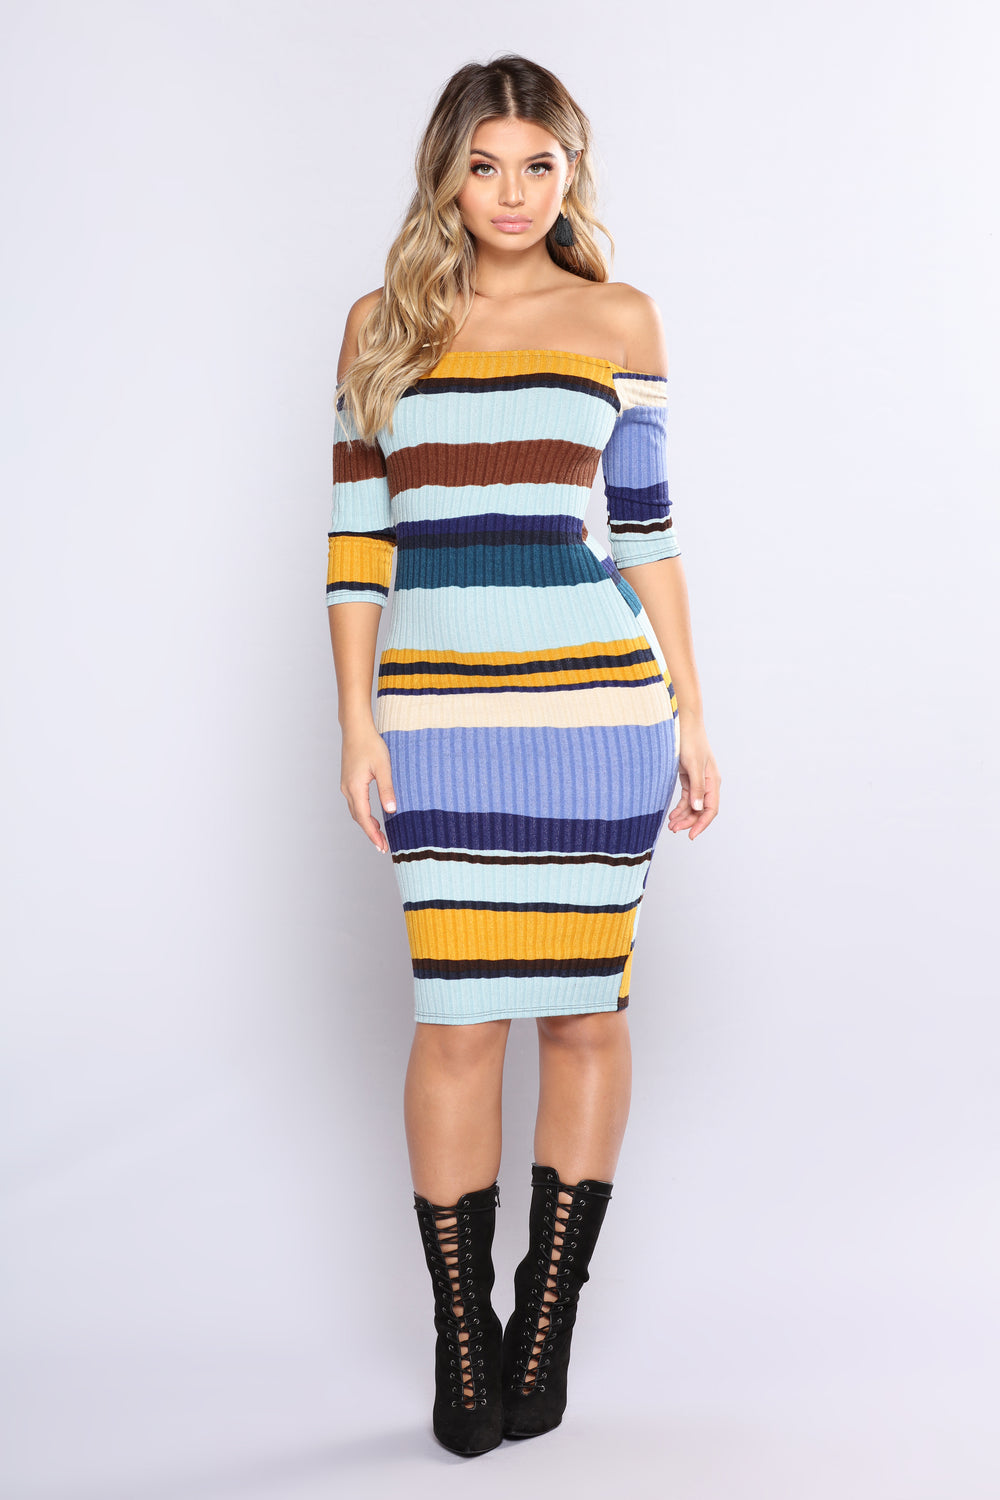 Hold Him Tight Striped Dress - Blue Multi